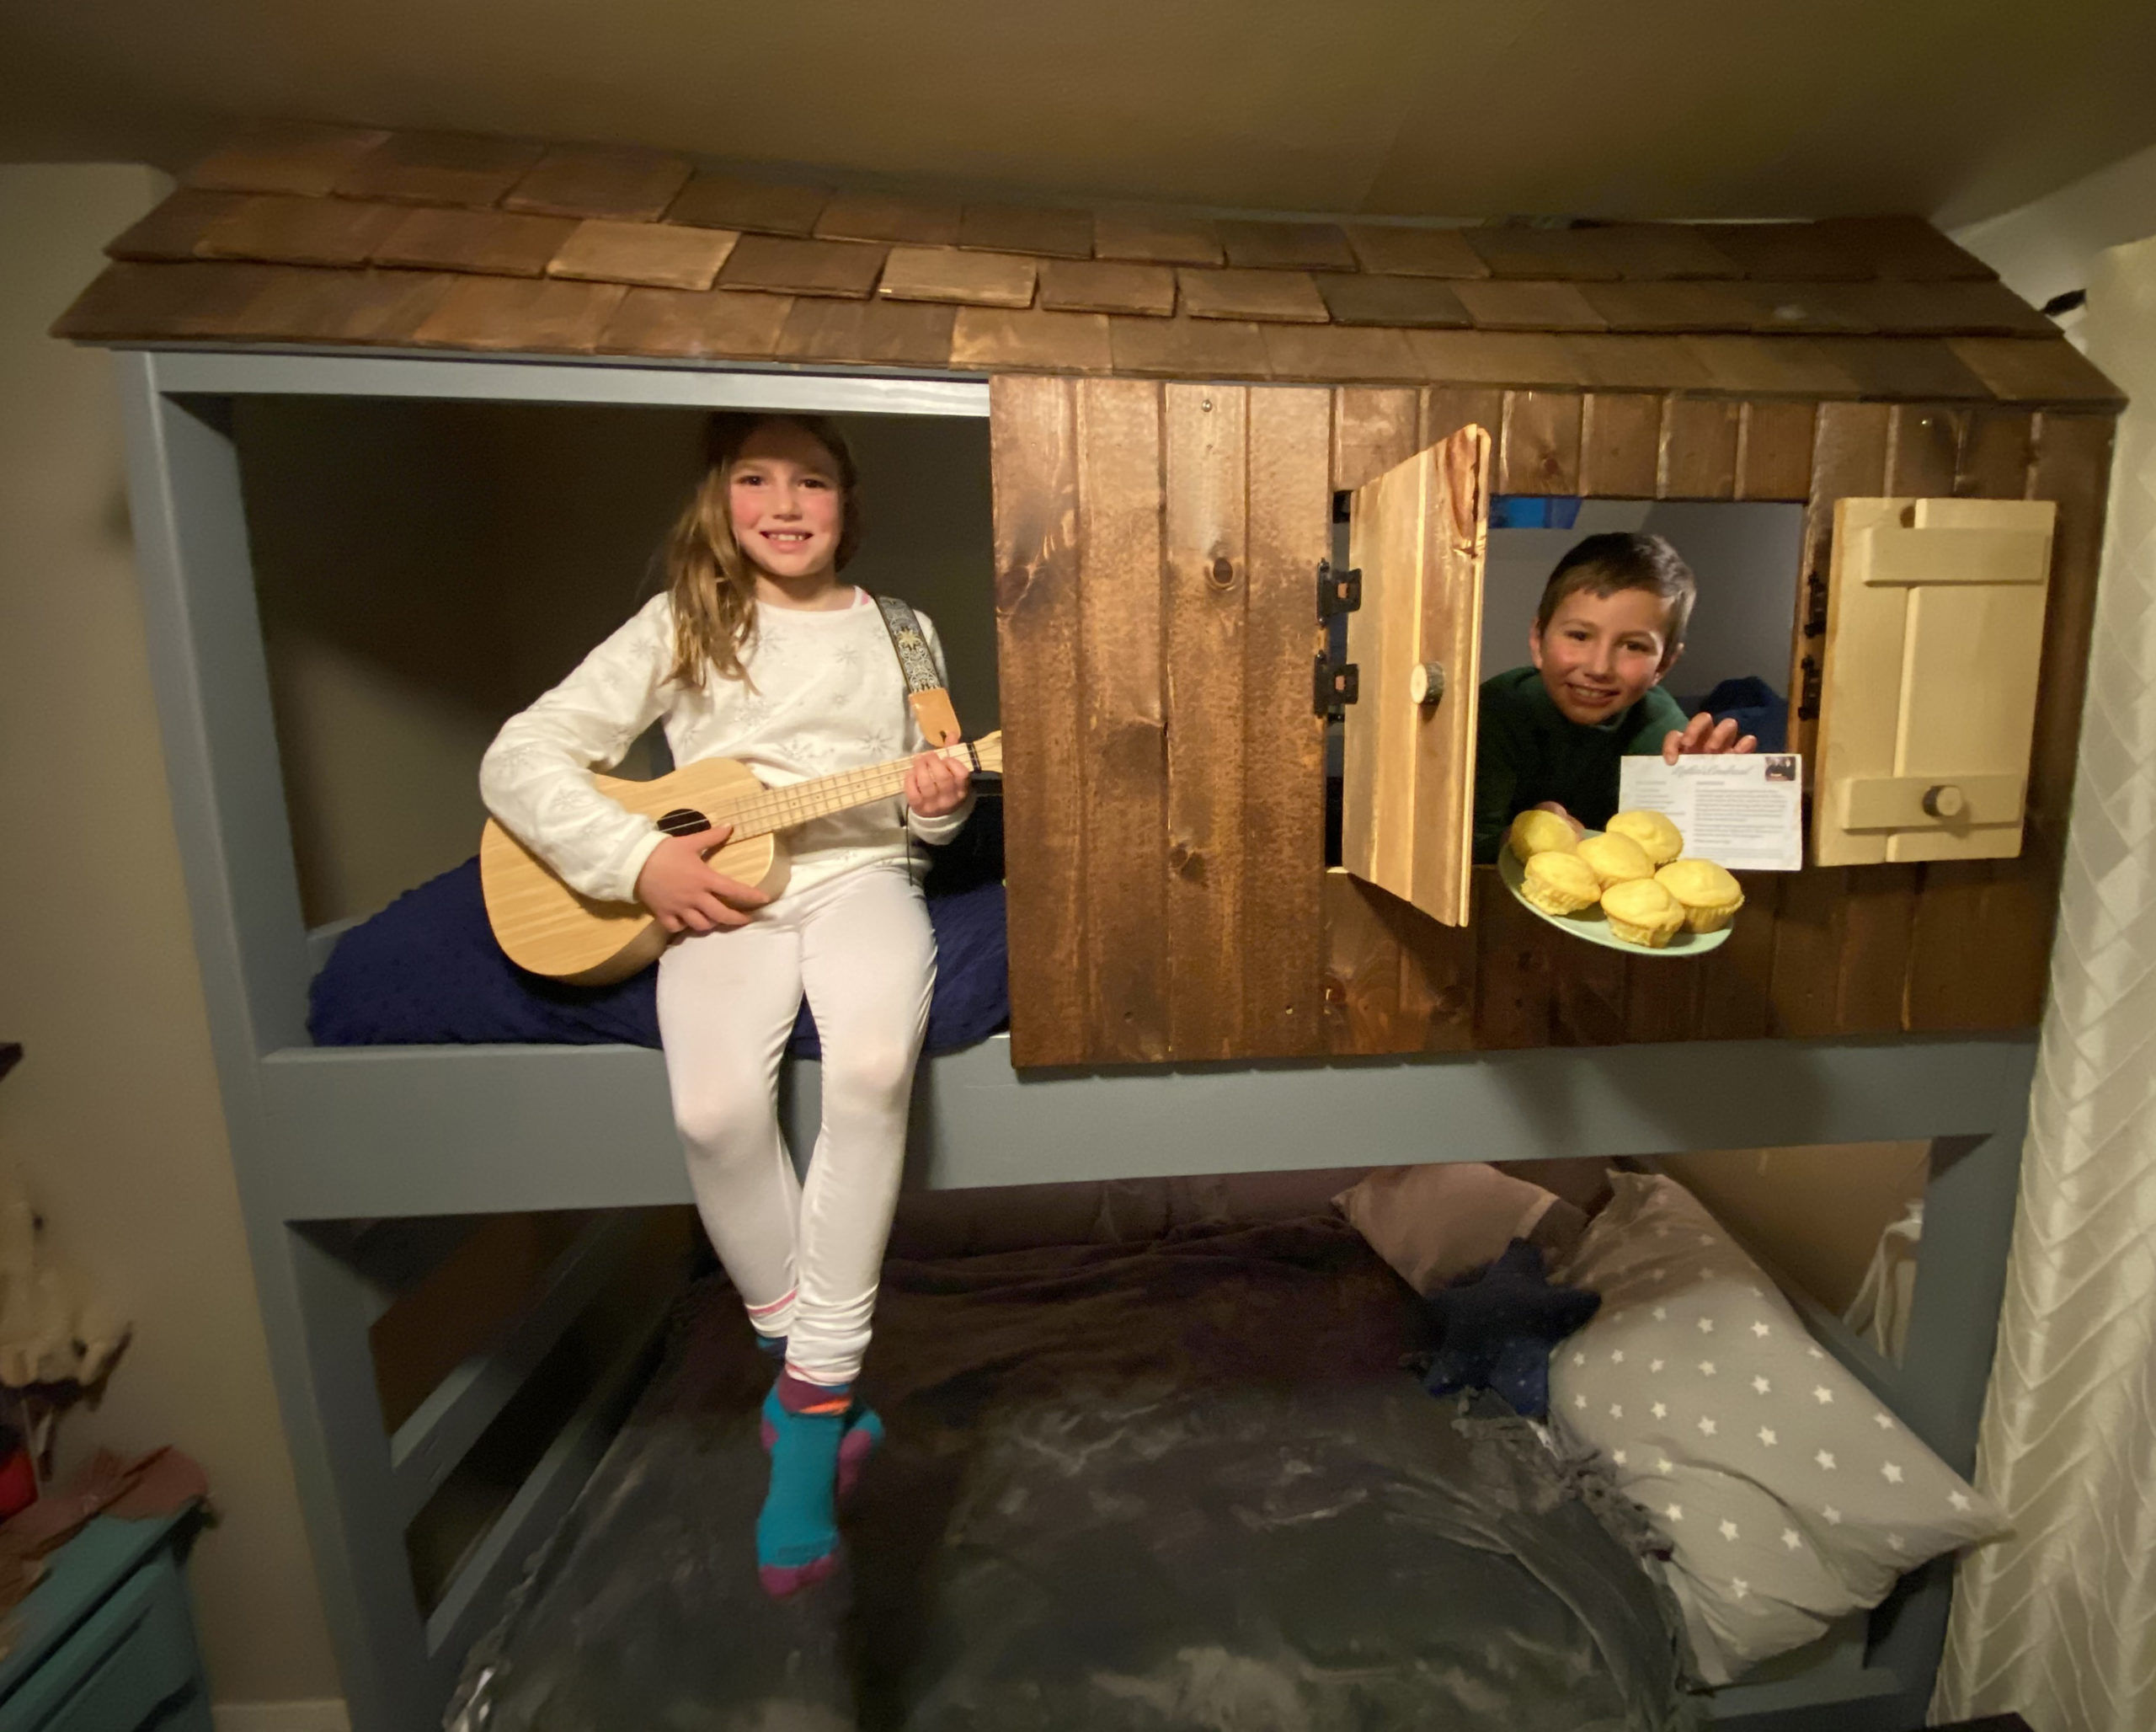 Elijah and Oona sit in their bunkbed with cornbread.